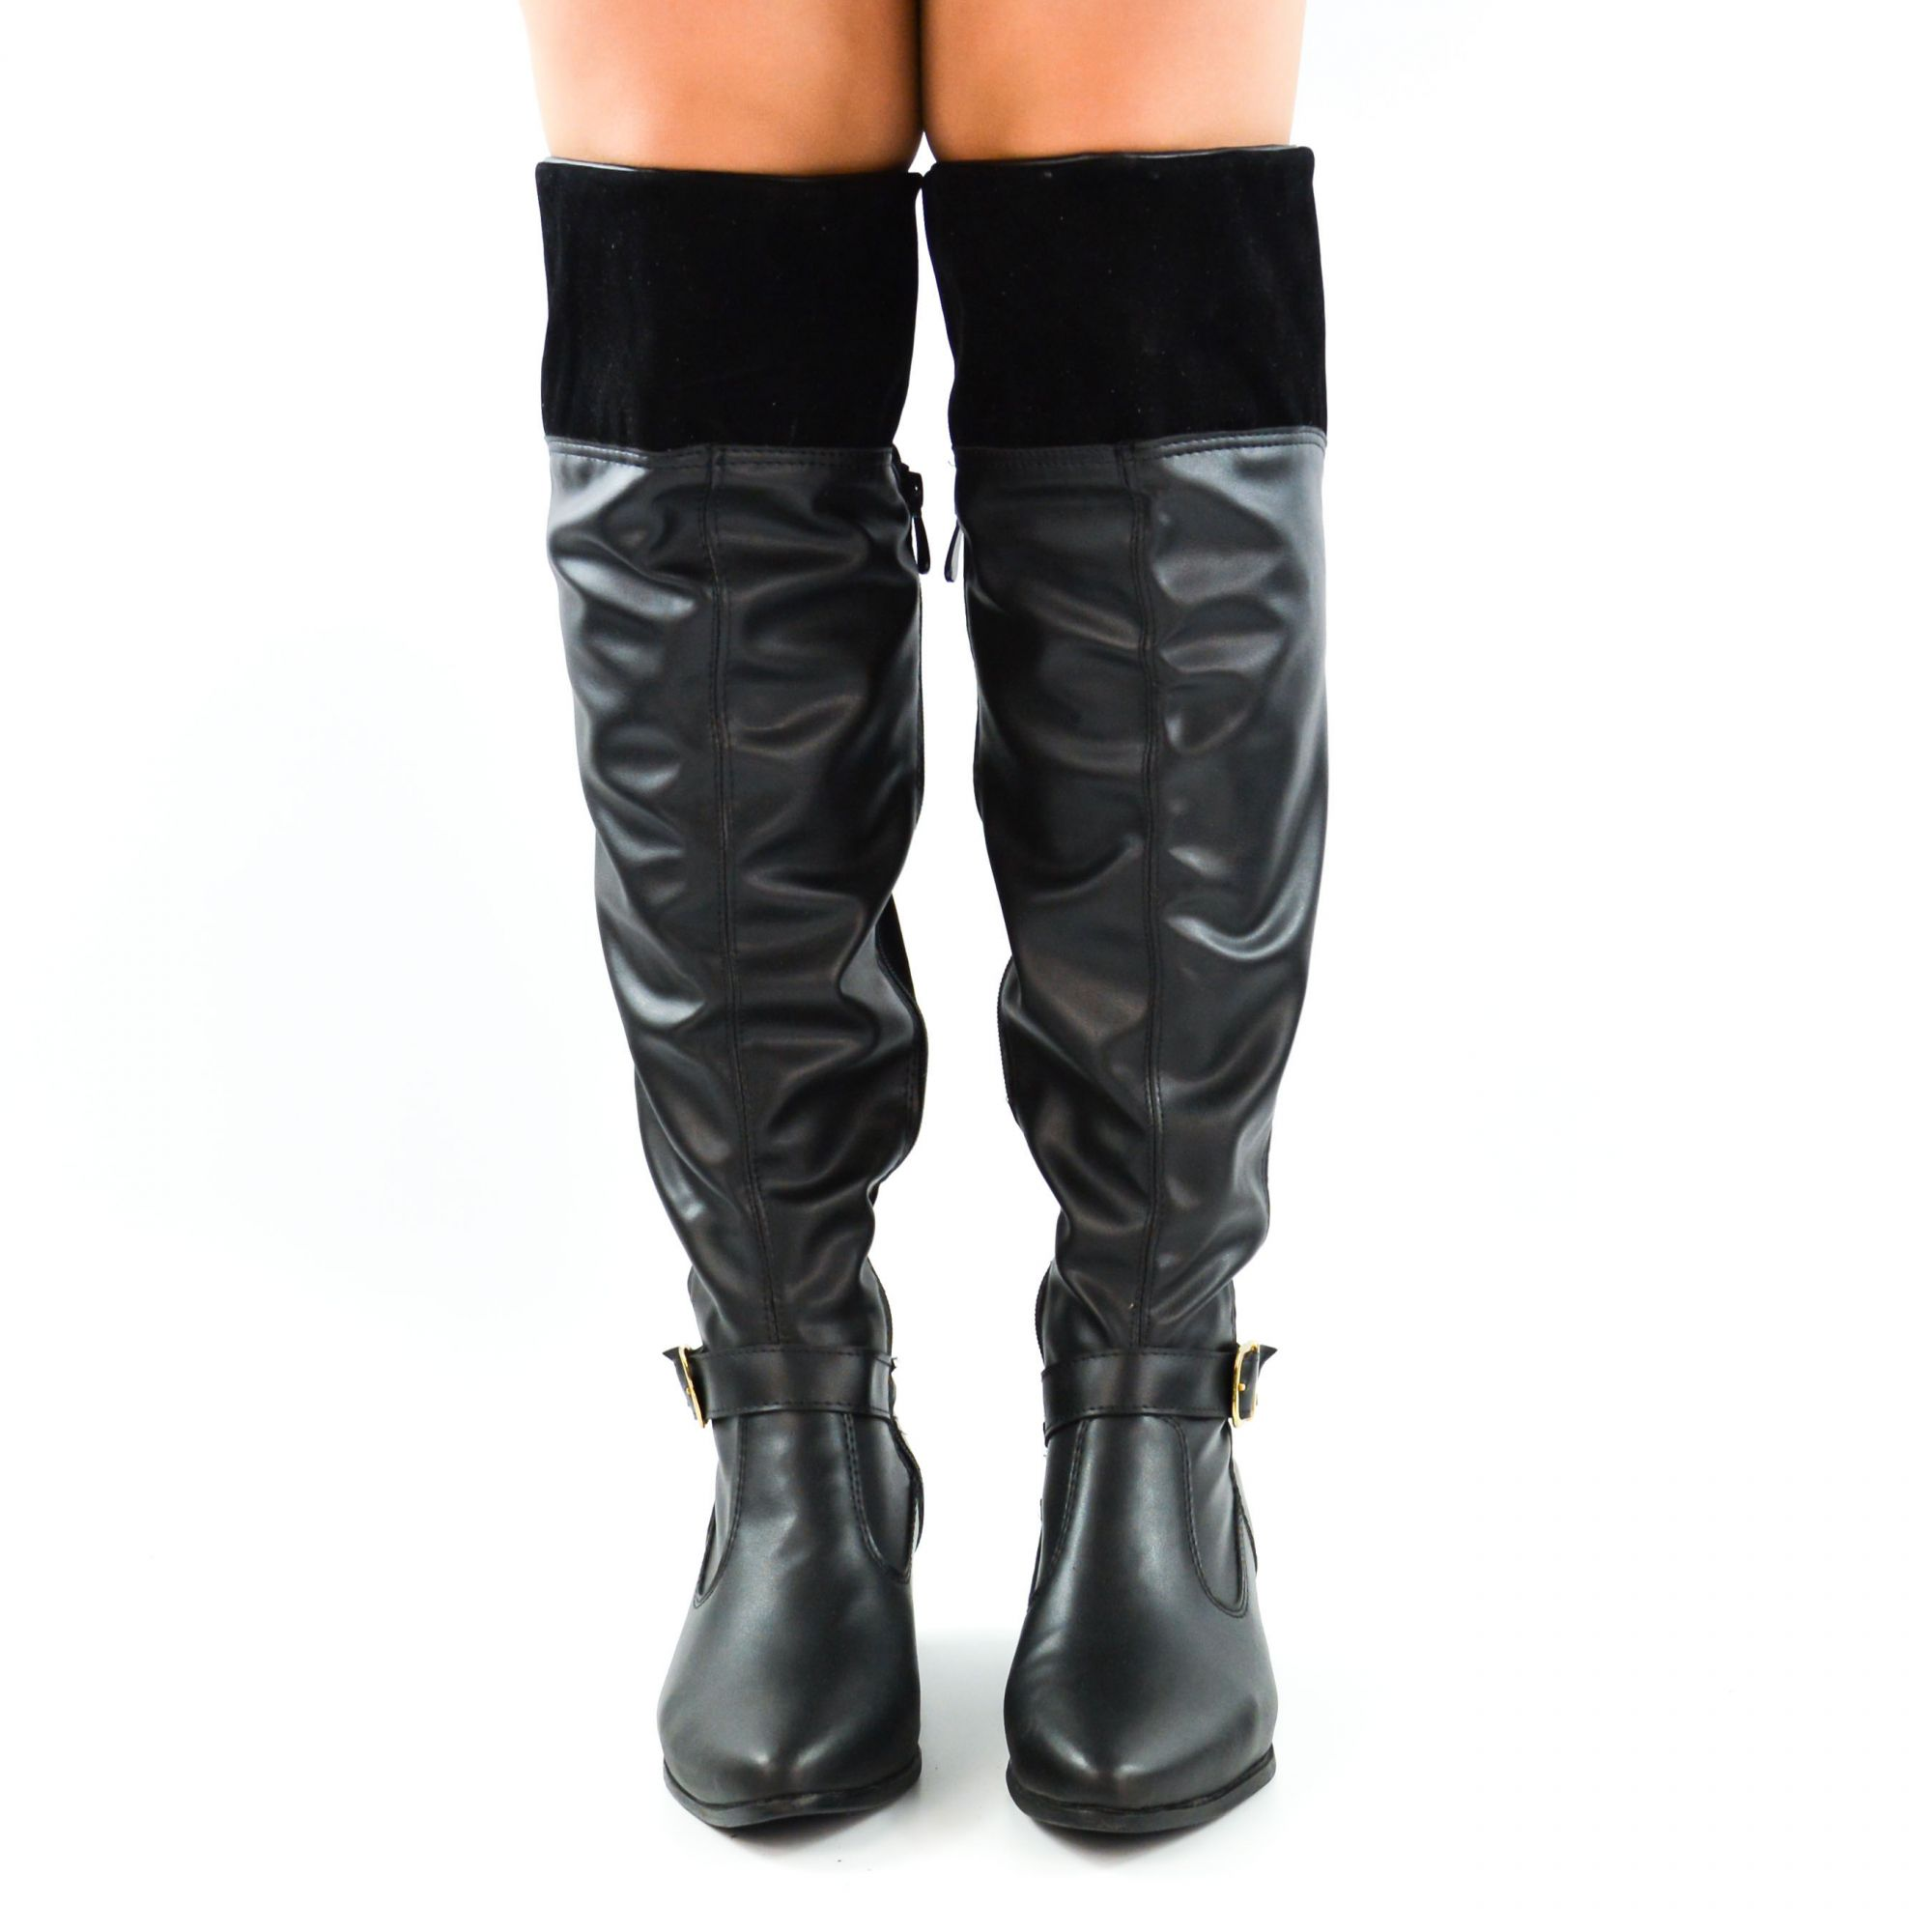 BOTA OVER THE KNEE BR2 LADY 11508-0250 - 17618